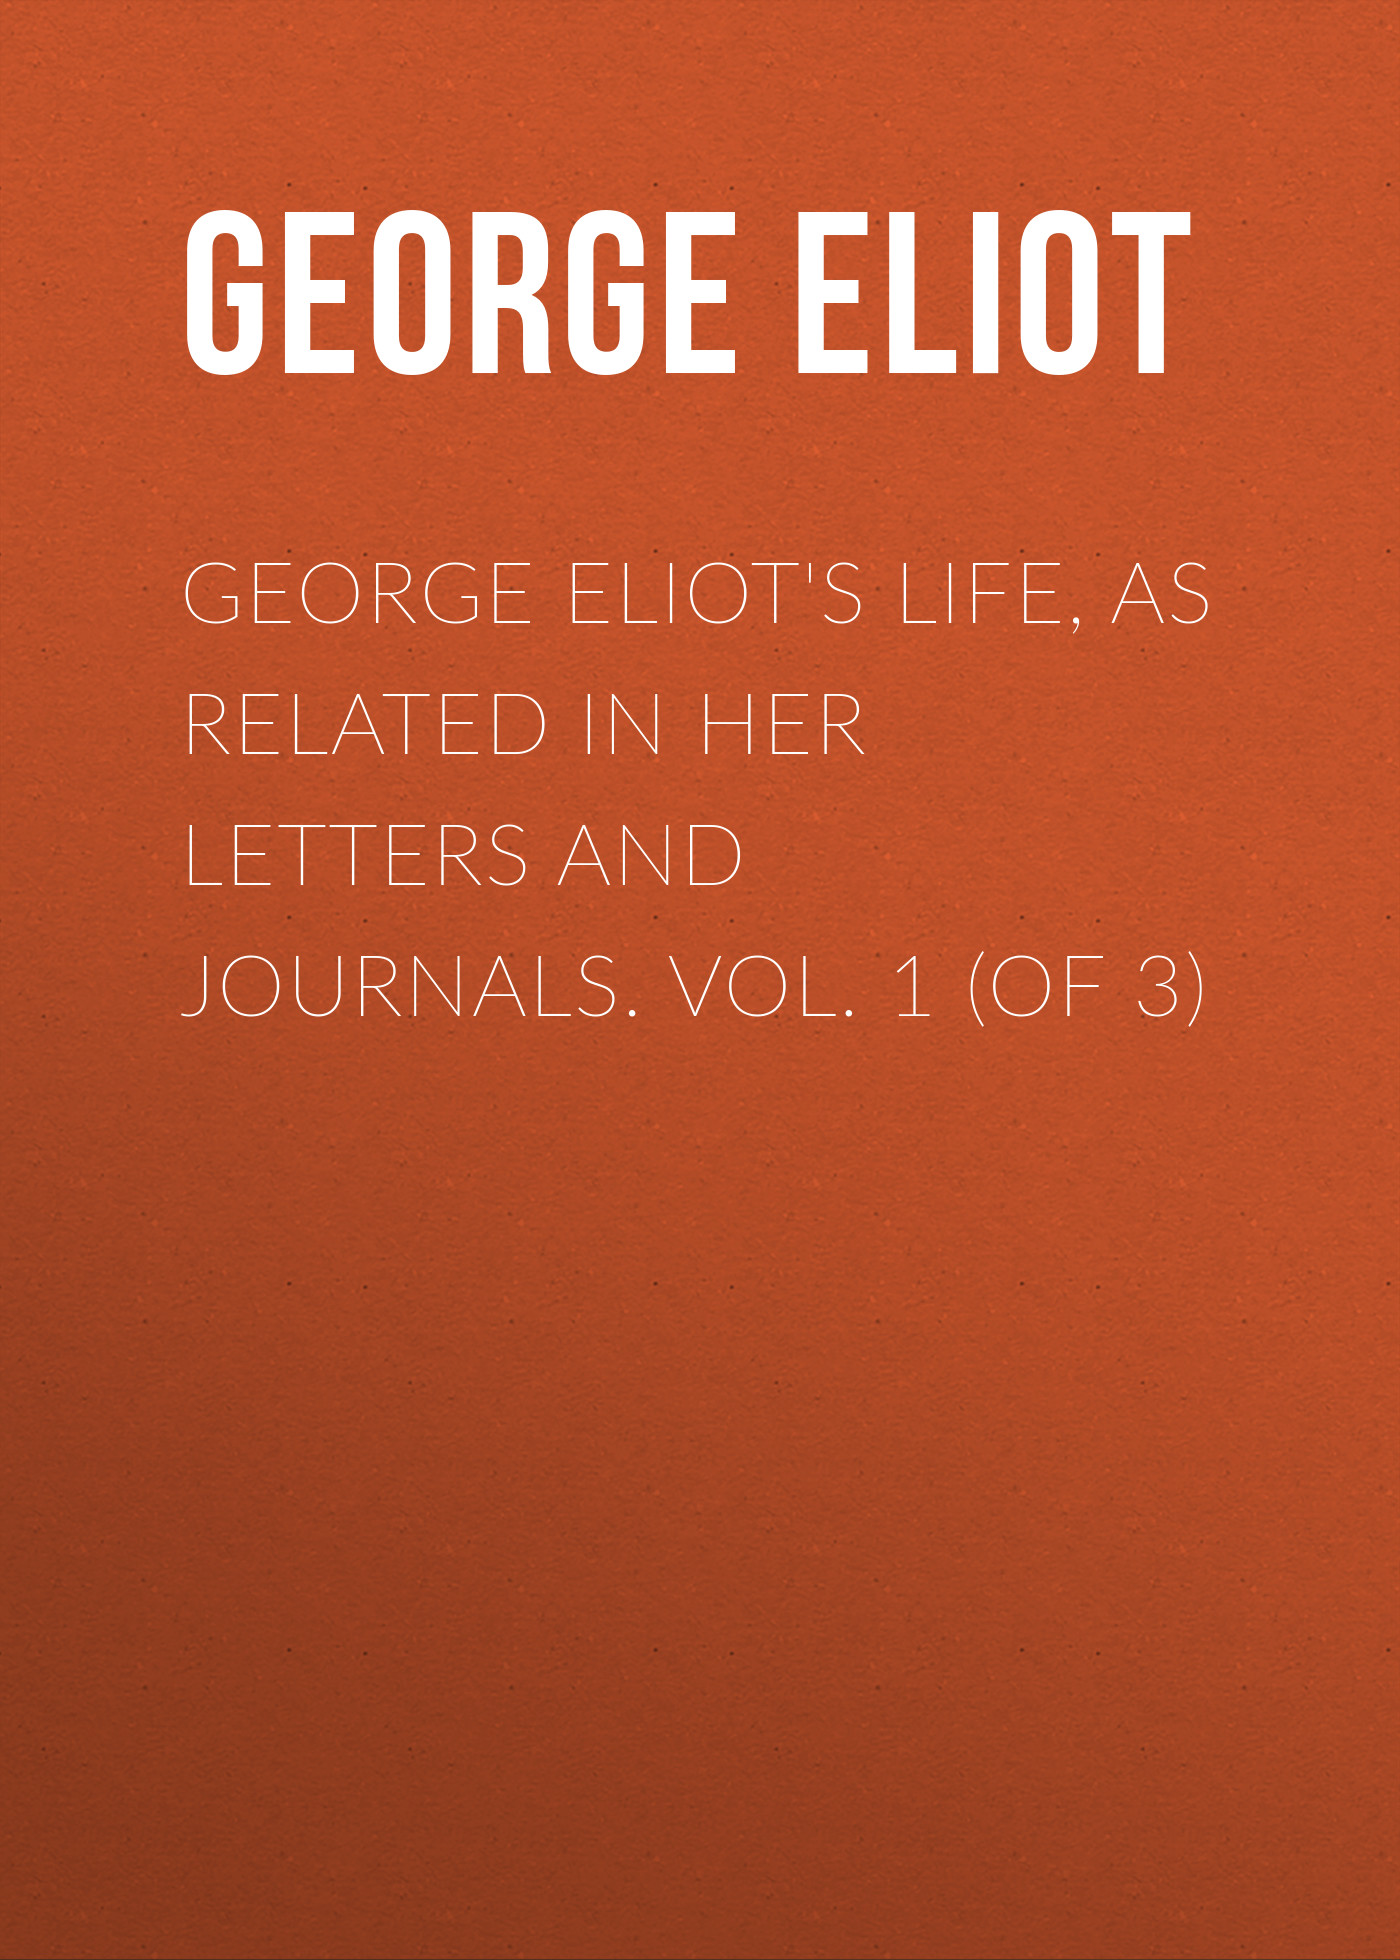 Джордж Элиот George Eliot's Life, as Related in Her Letters and Journals. Vol. 1 (of 3) джордж элиот daniel deronda